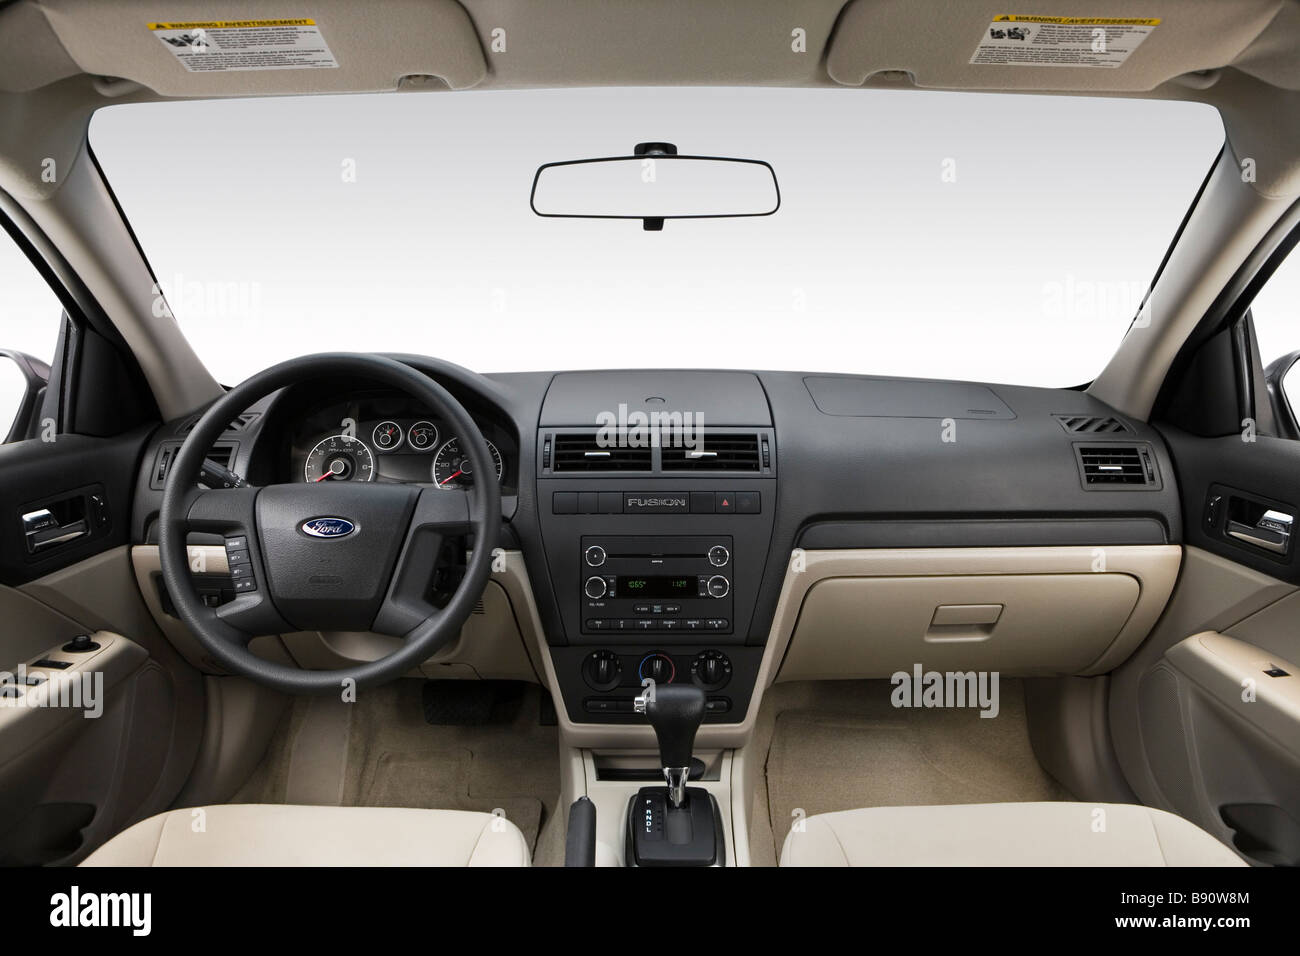 2009 Ford Fusion S in White - Dashboard, center console, gear shifter view - Stock Image